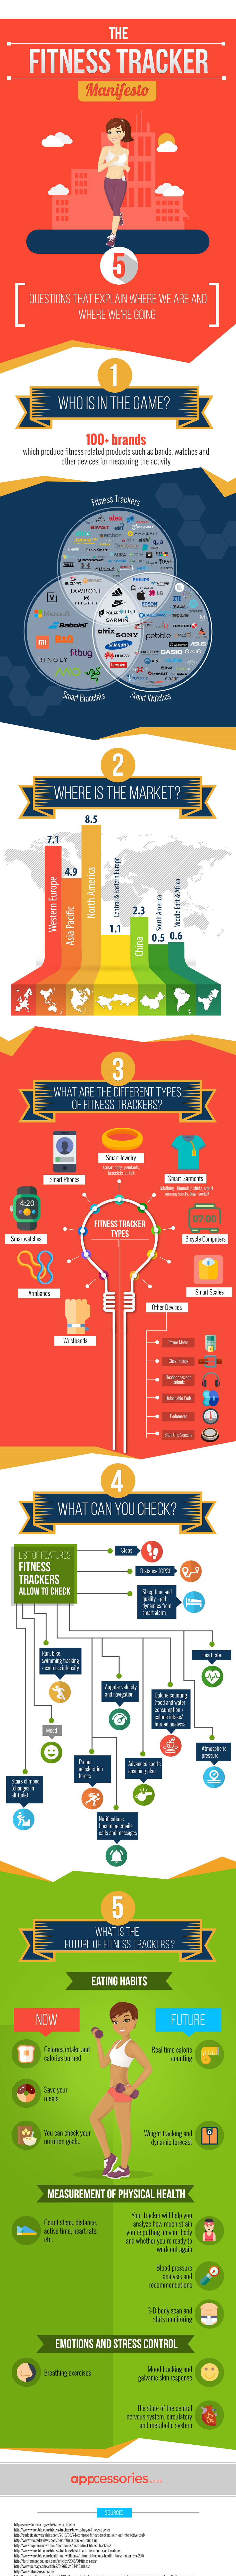 fitness-tracker-infographic